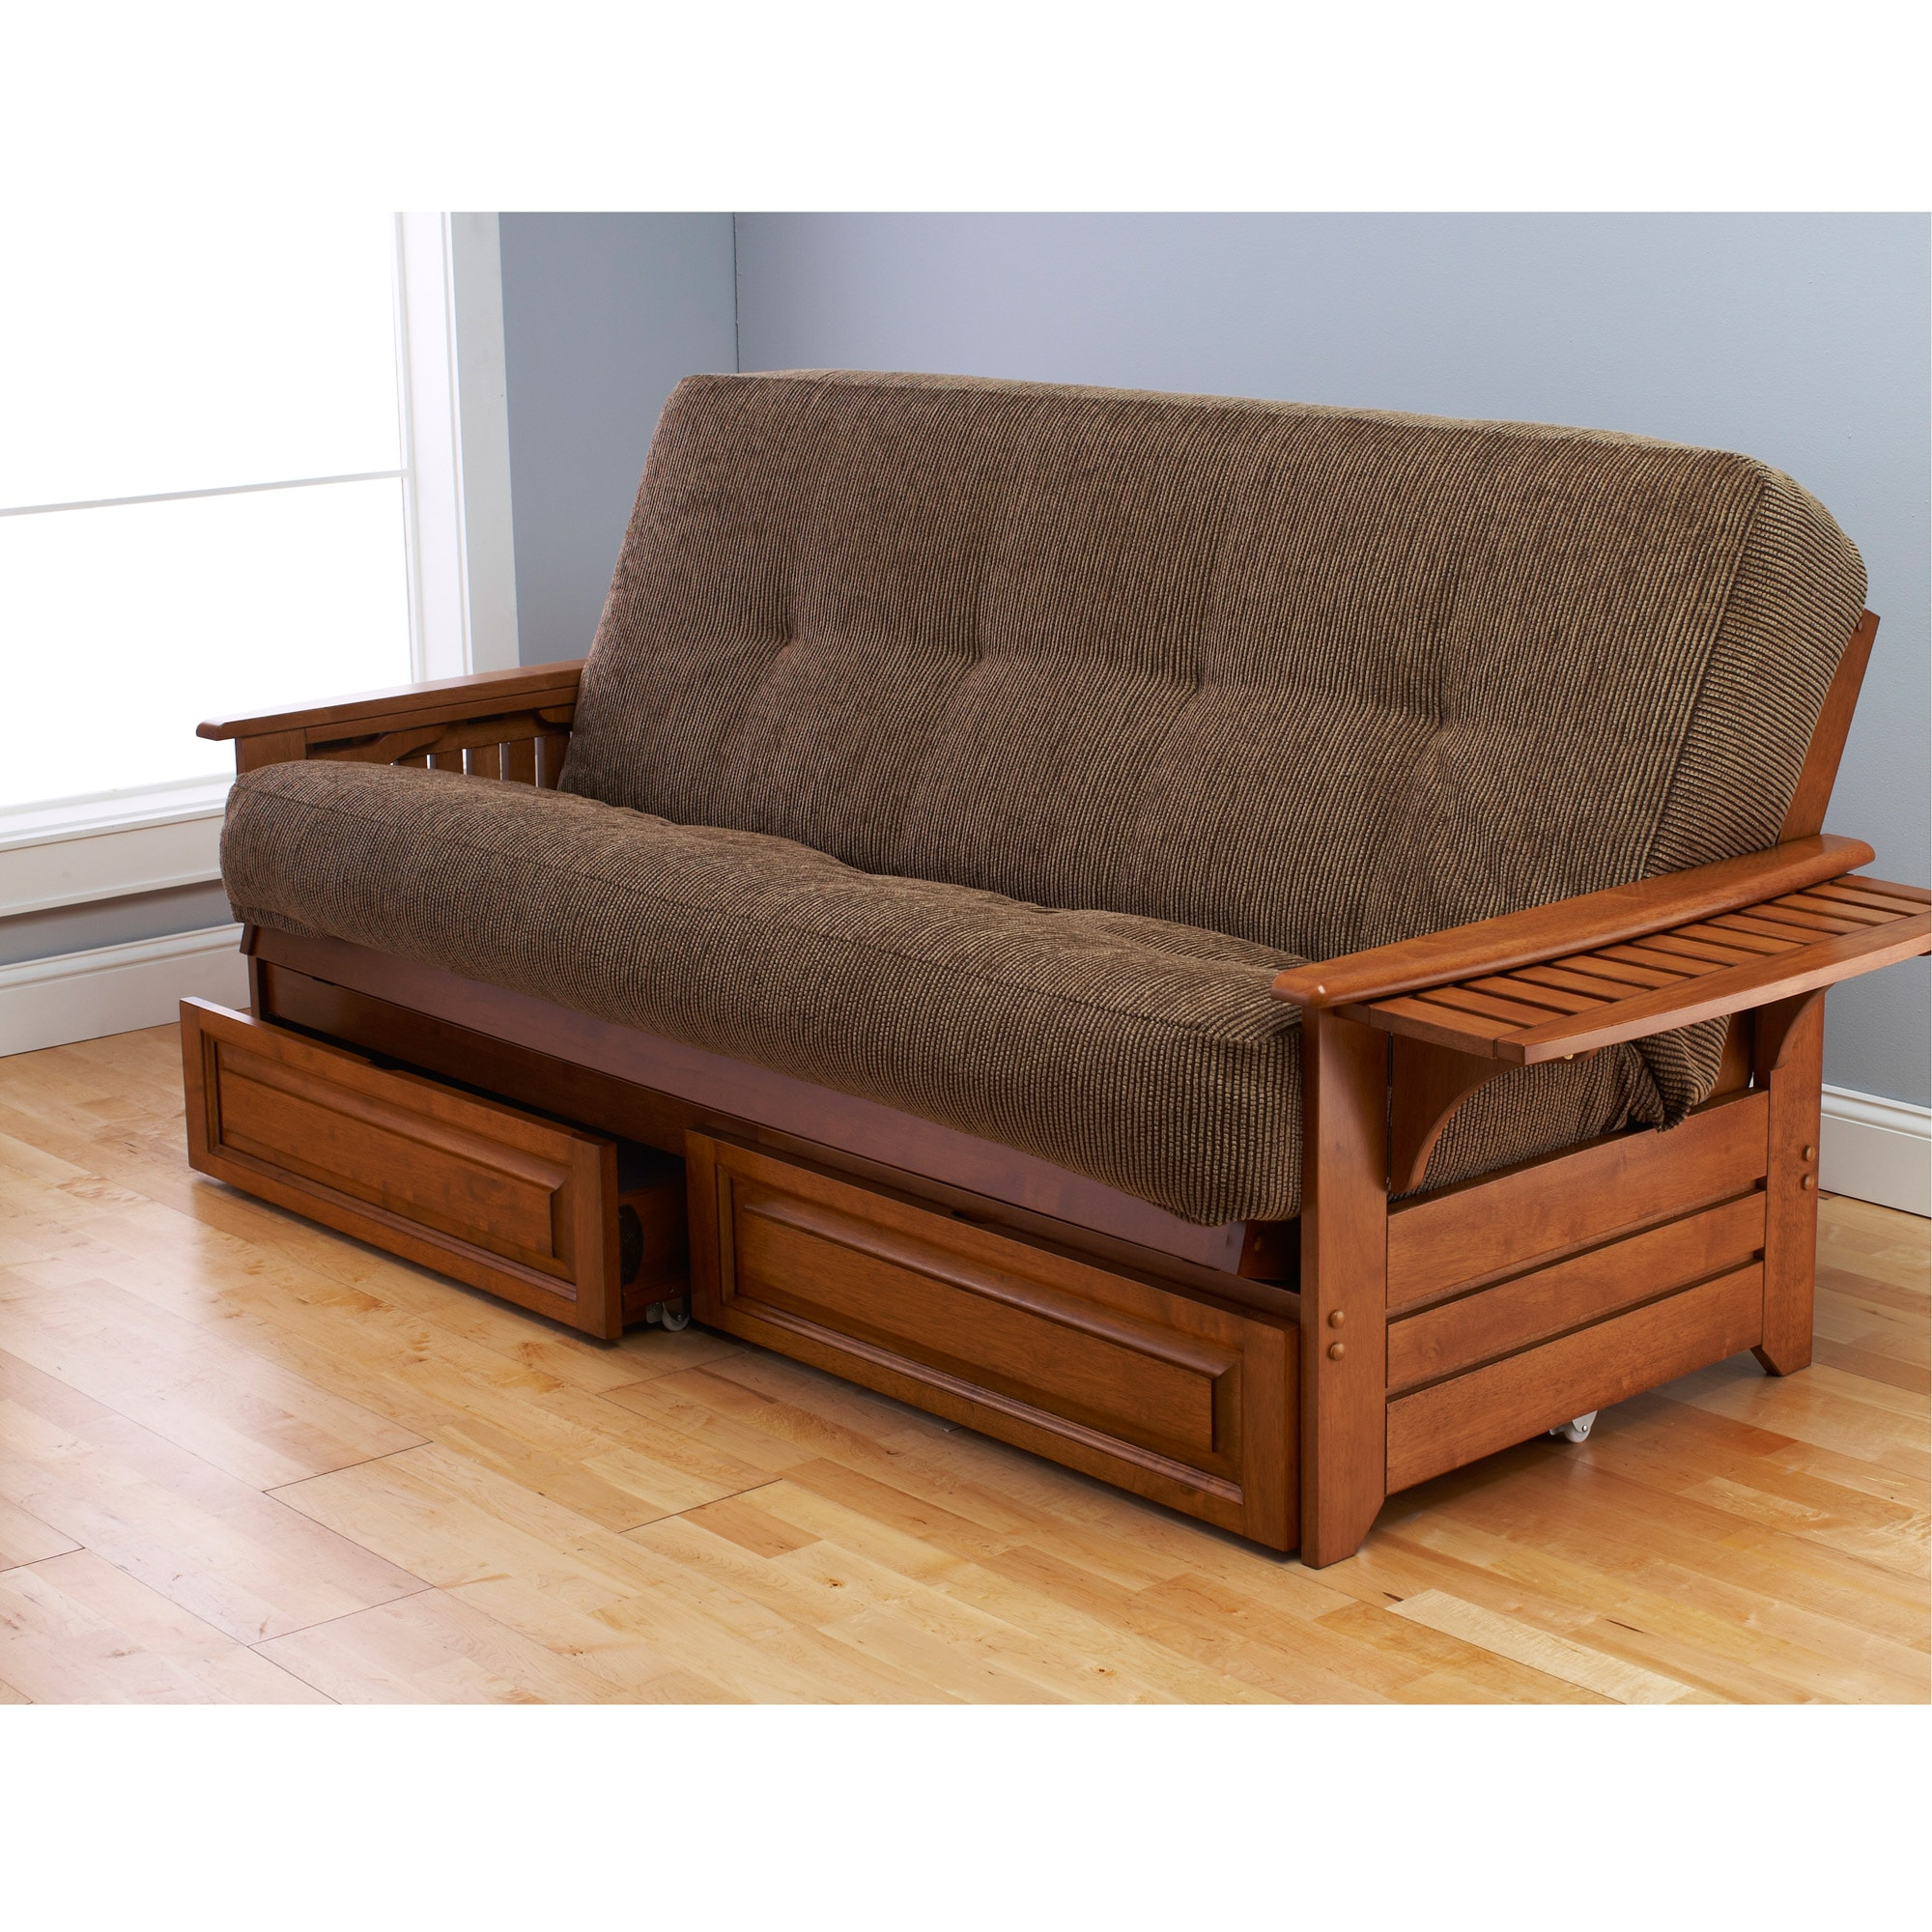 Somette Ali Phonics Multi flex Honey Oak Futon Frame